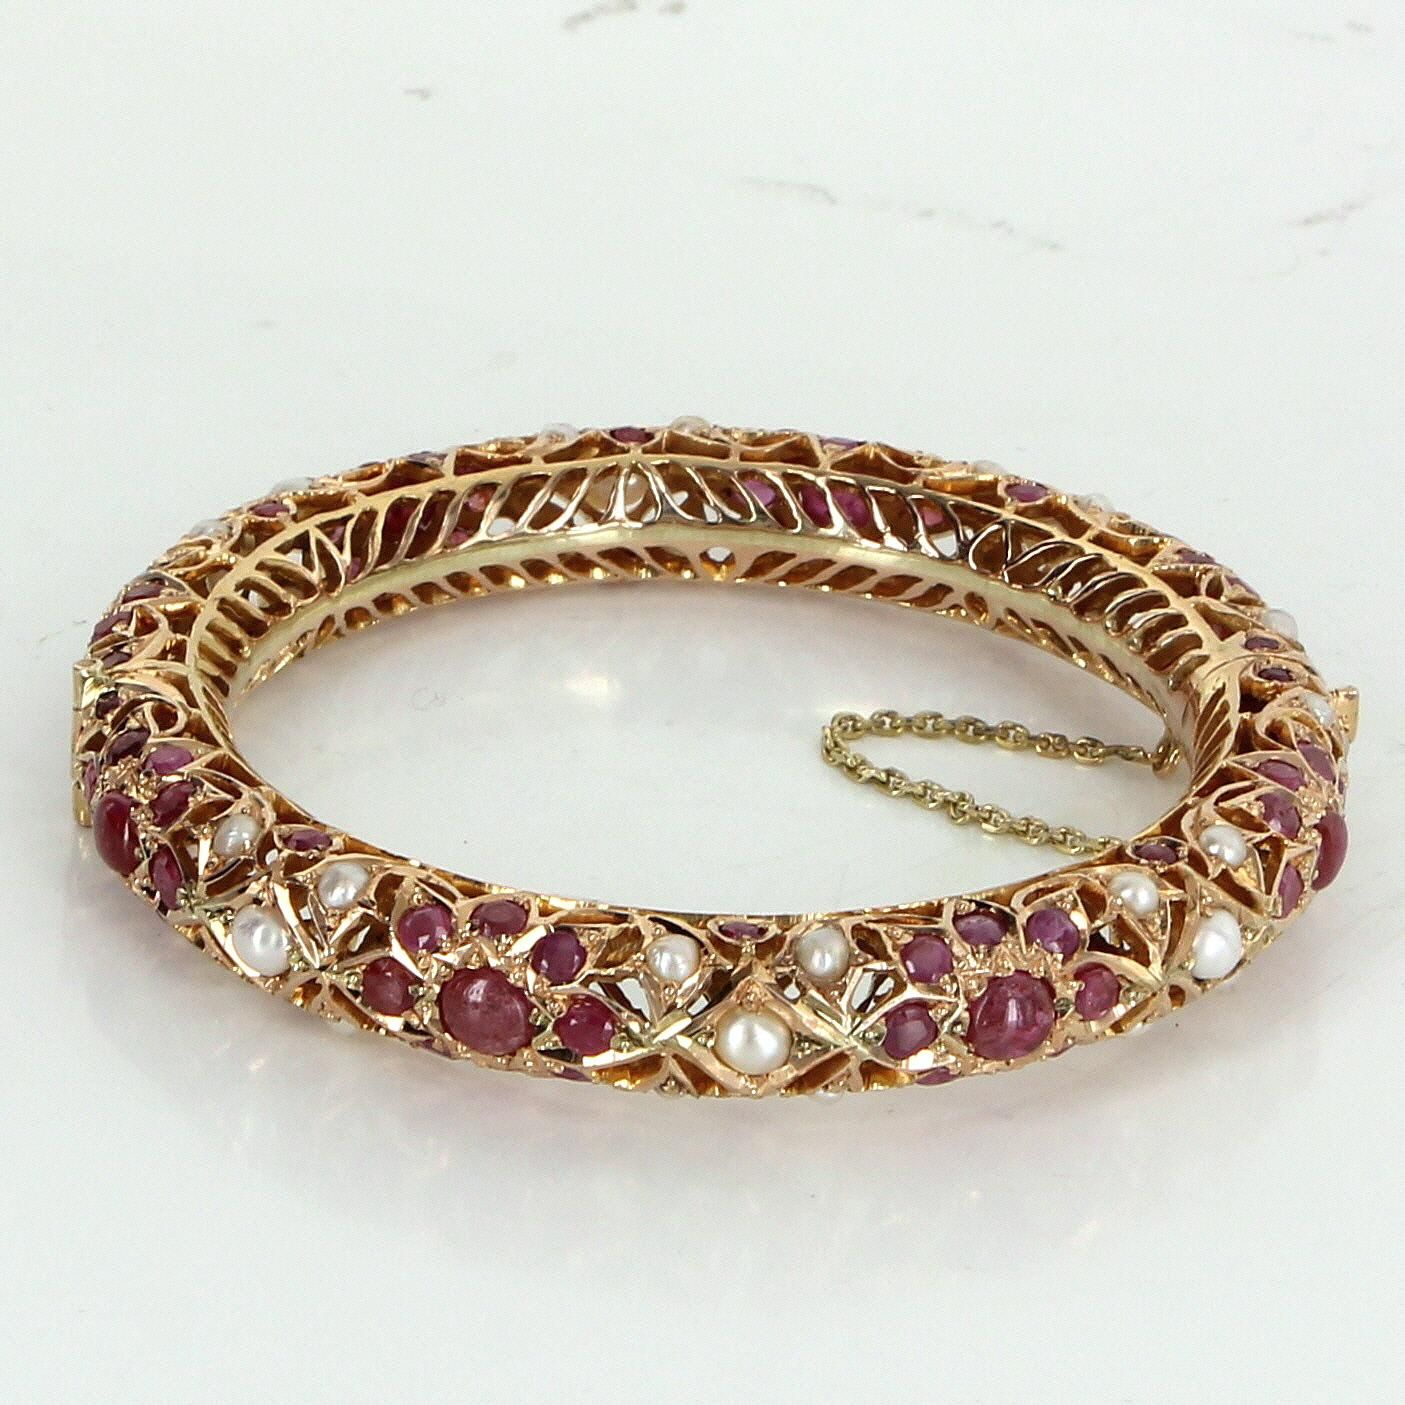 jewels en sotheby bangle karat auctions bangles important web s bracelets